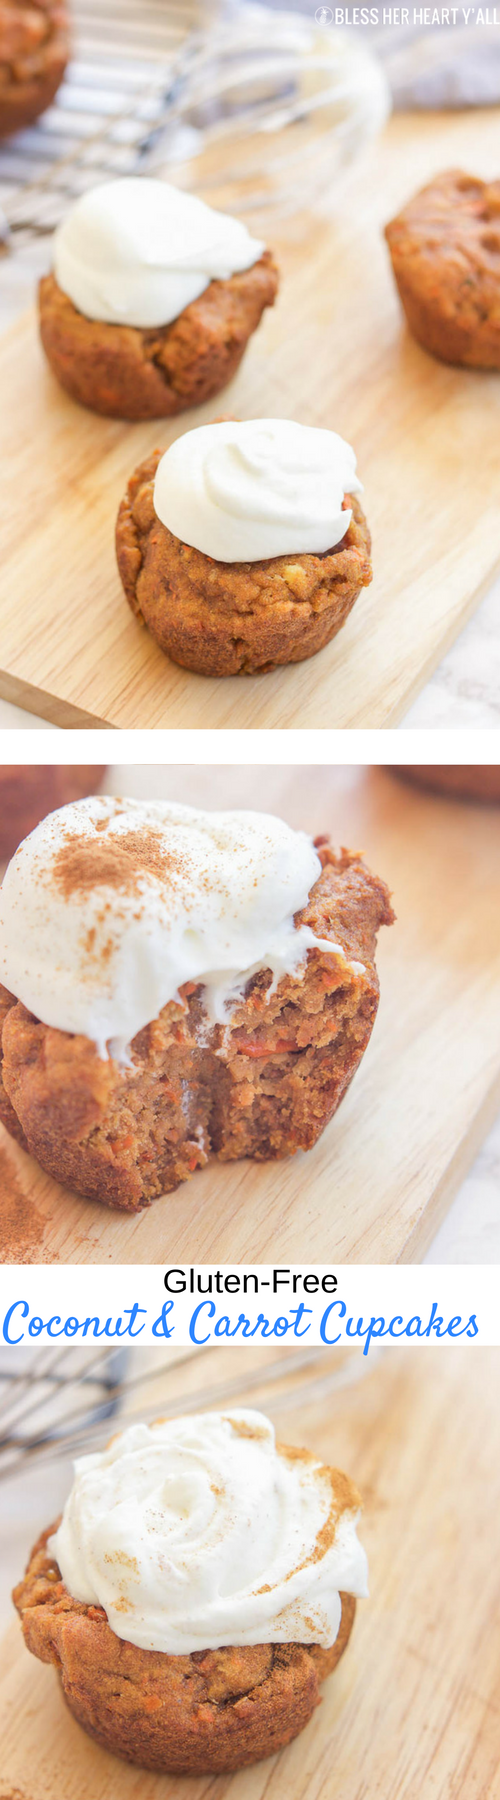 gluten-free coconut and carrot cupcakes